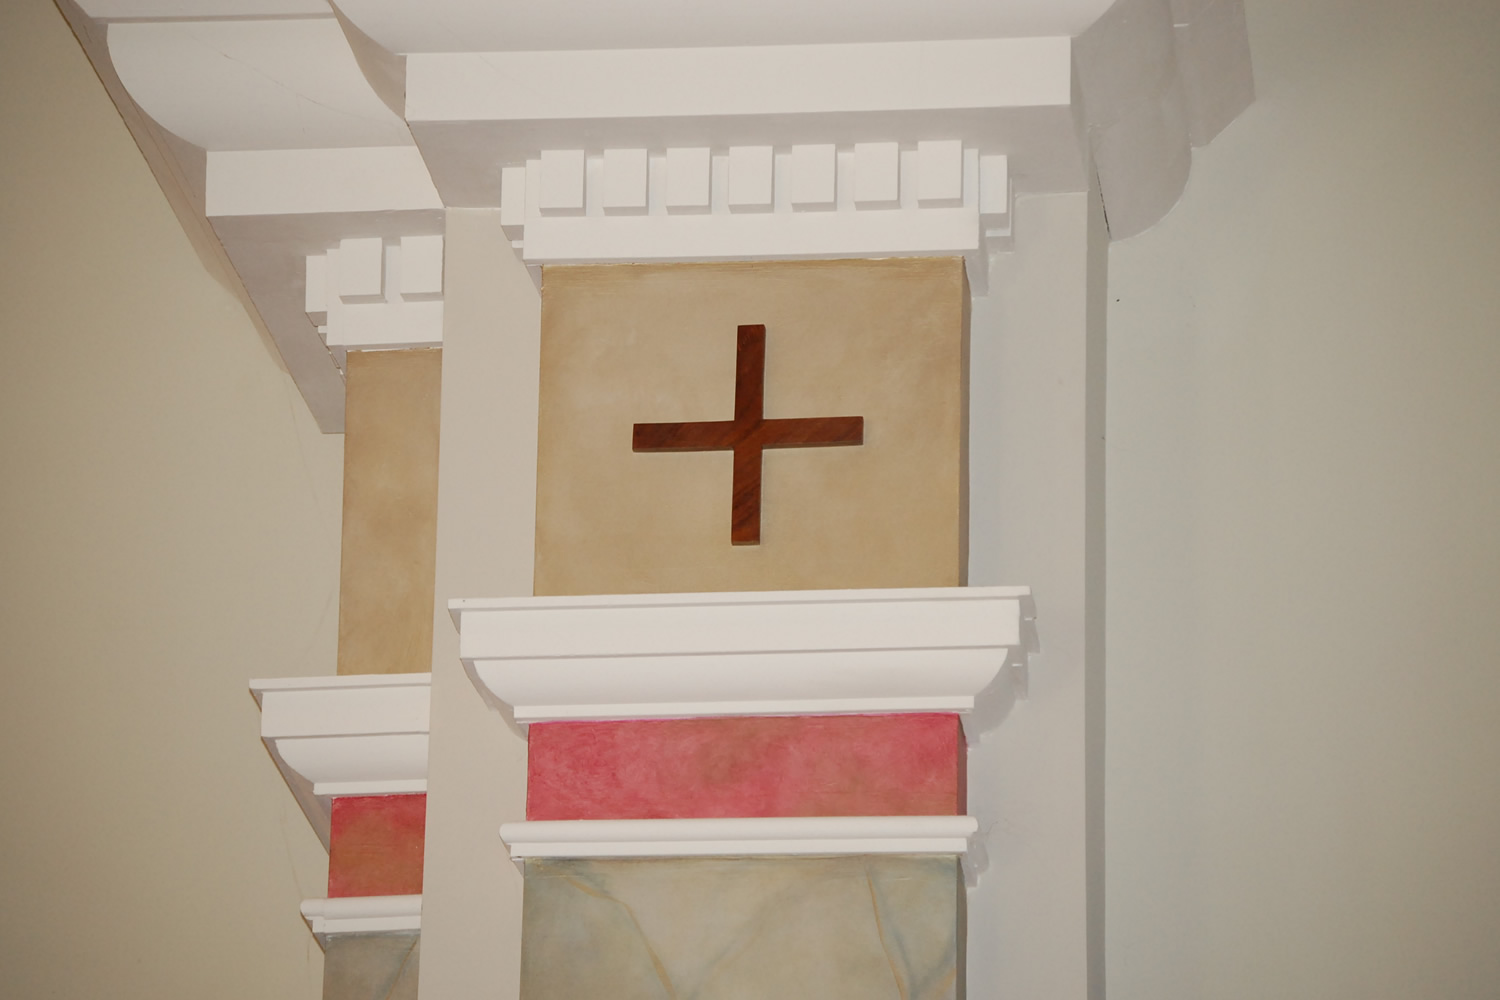 The symbol of the cross is prevalent throughout the campus